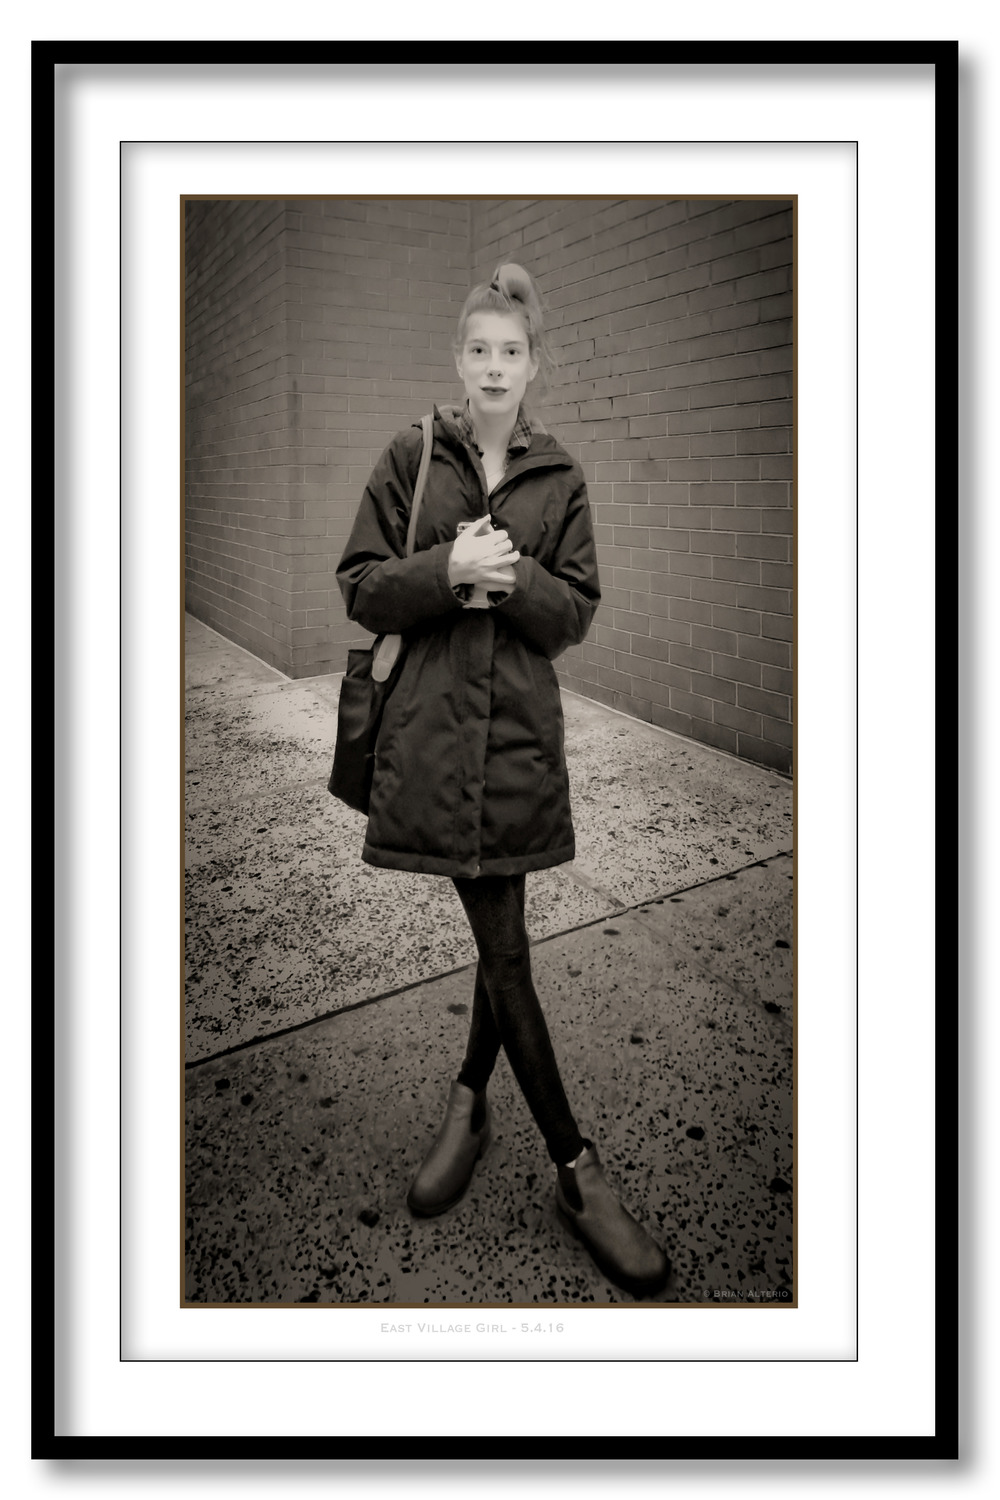 East Village Girl - 5.4.16 - Framed.jpg